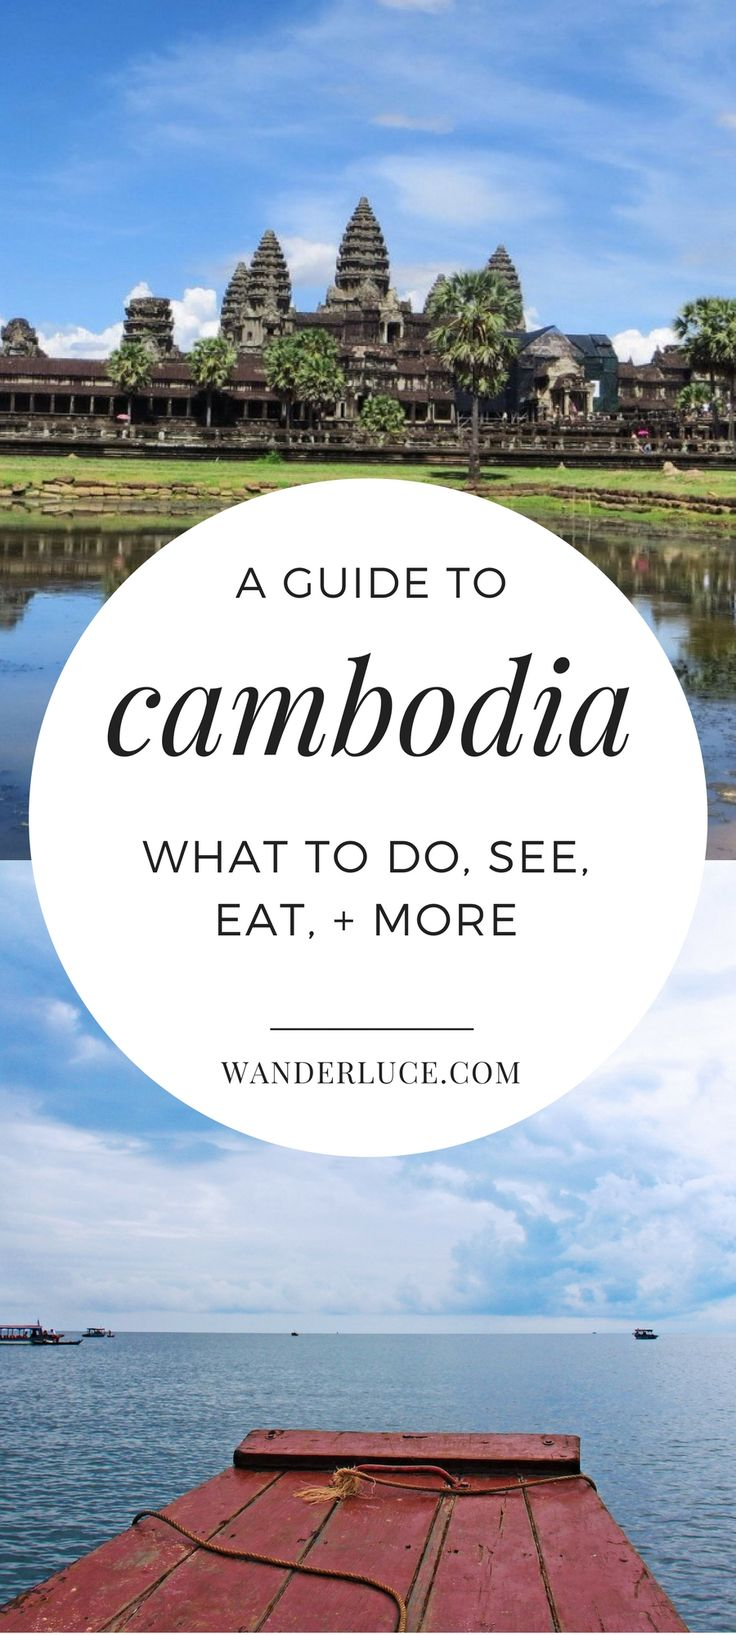 A guide to the wonderfully diverse, heartbreaking country that is Cambodia. If you don't read this and book a flight immediately, we'll book it for you.